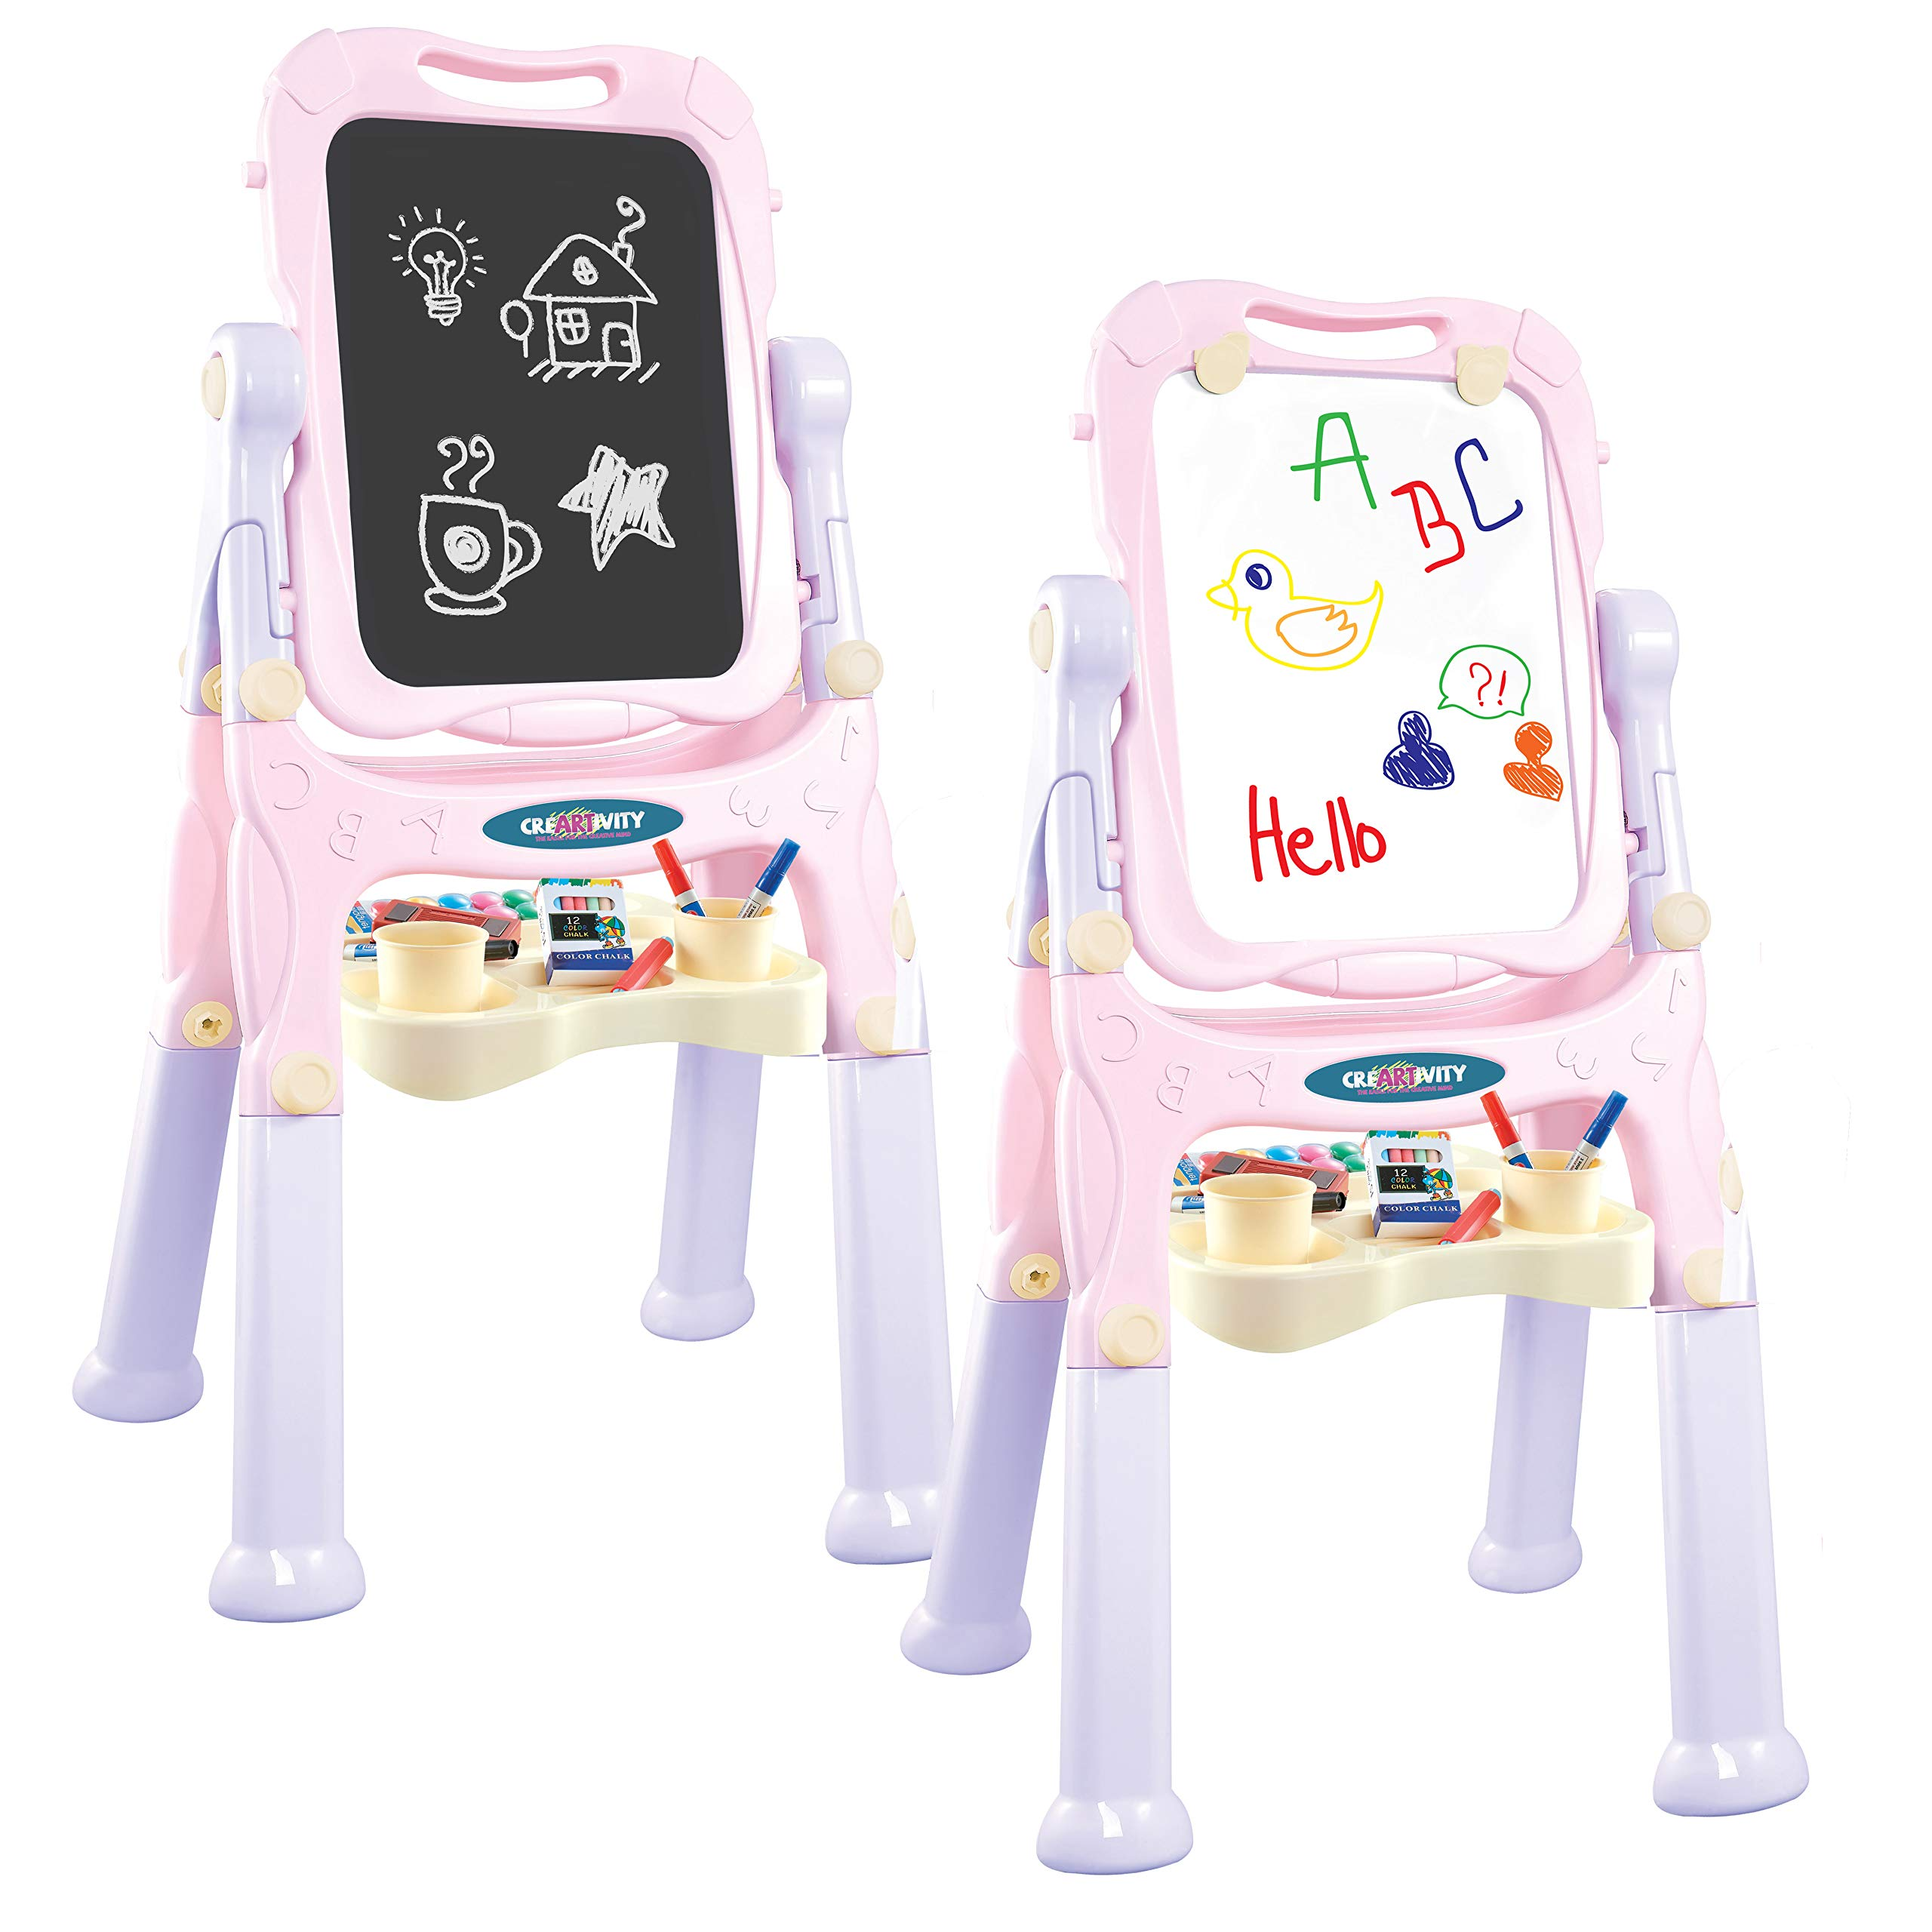 Kraftic All in One Kids Art Easel and Painting Board, Double Sided with Chalkboard and Whiteboard, Magnetic Dry Erase Drawing Board with Storage Tray for Childrens Accessories